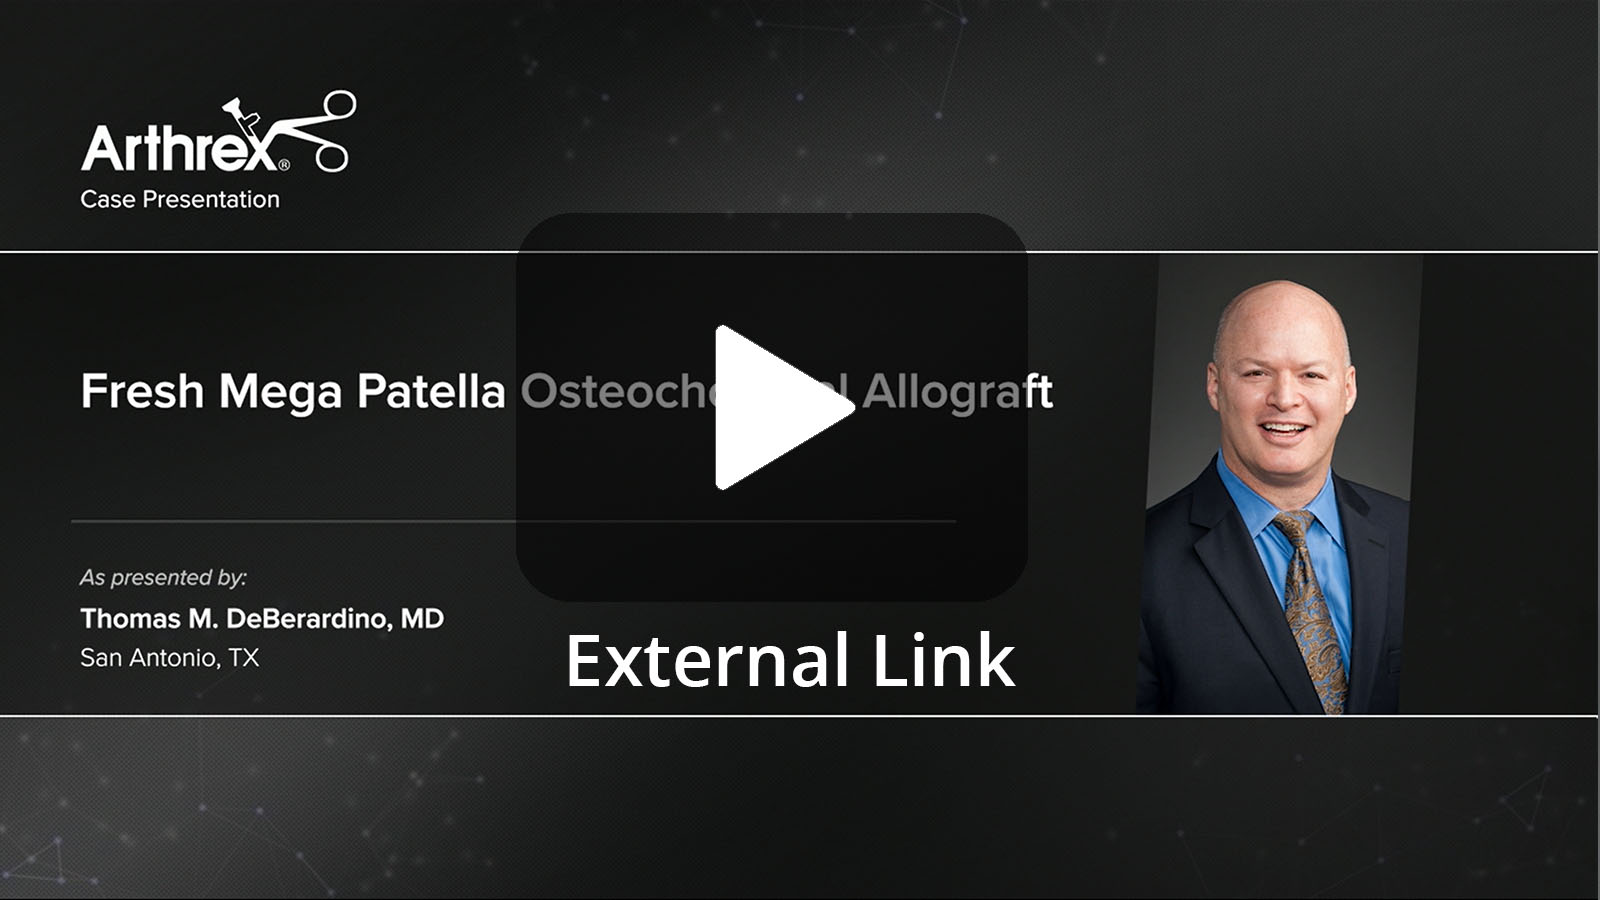 Thomas M. DeBerardino, MD presents a complex case that included an anterior cruciate ligament (ACL) revision, high-tibial osteotomy, medial meniscus allograft transplant, and fresh osteochondral allograft of the patella. (External Link)